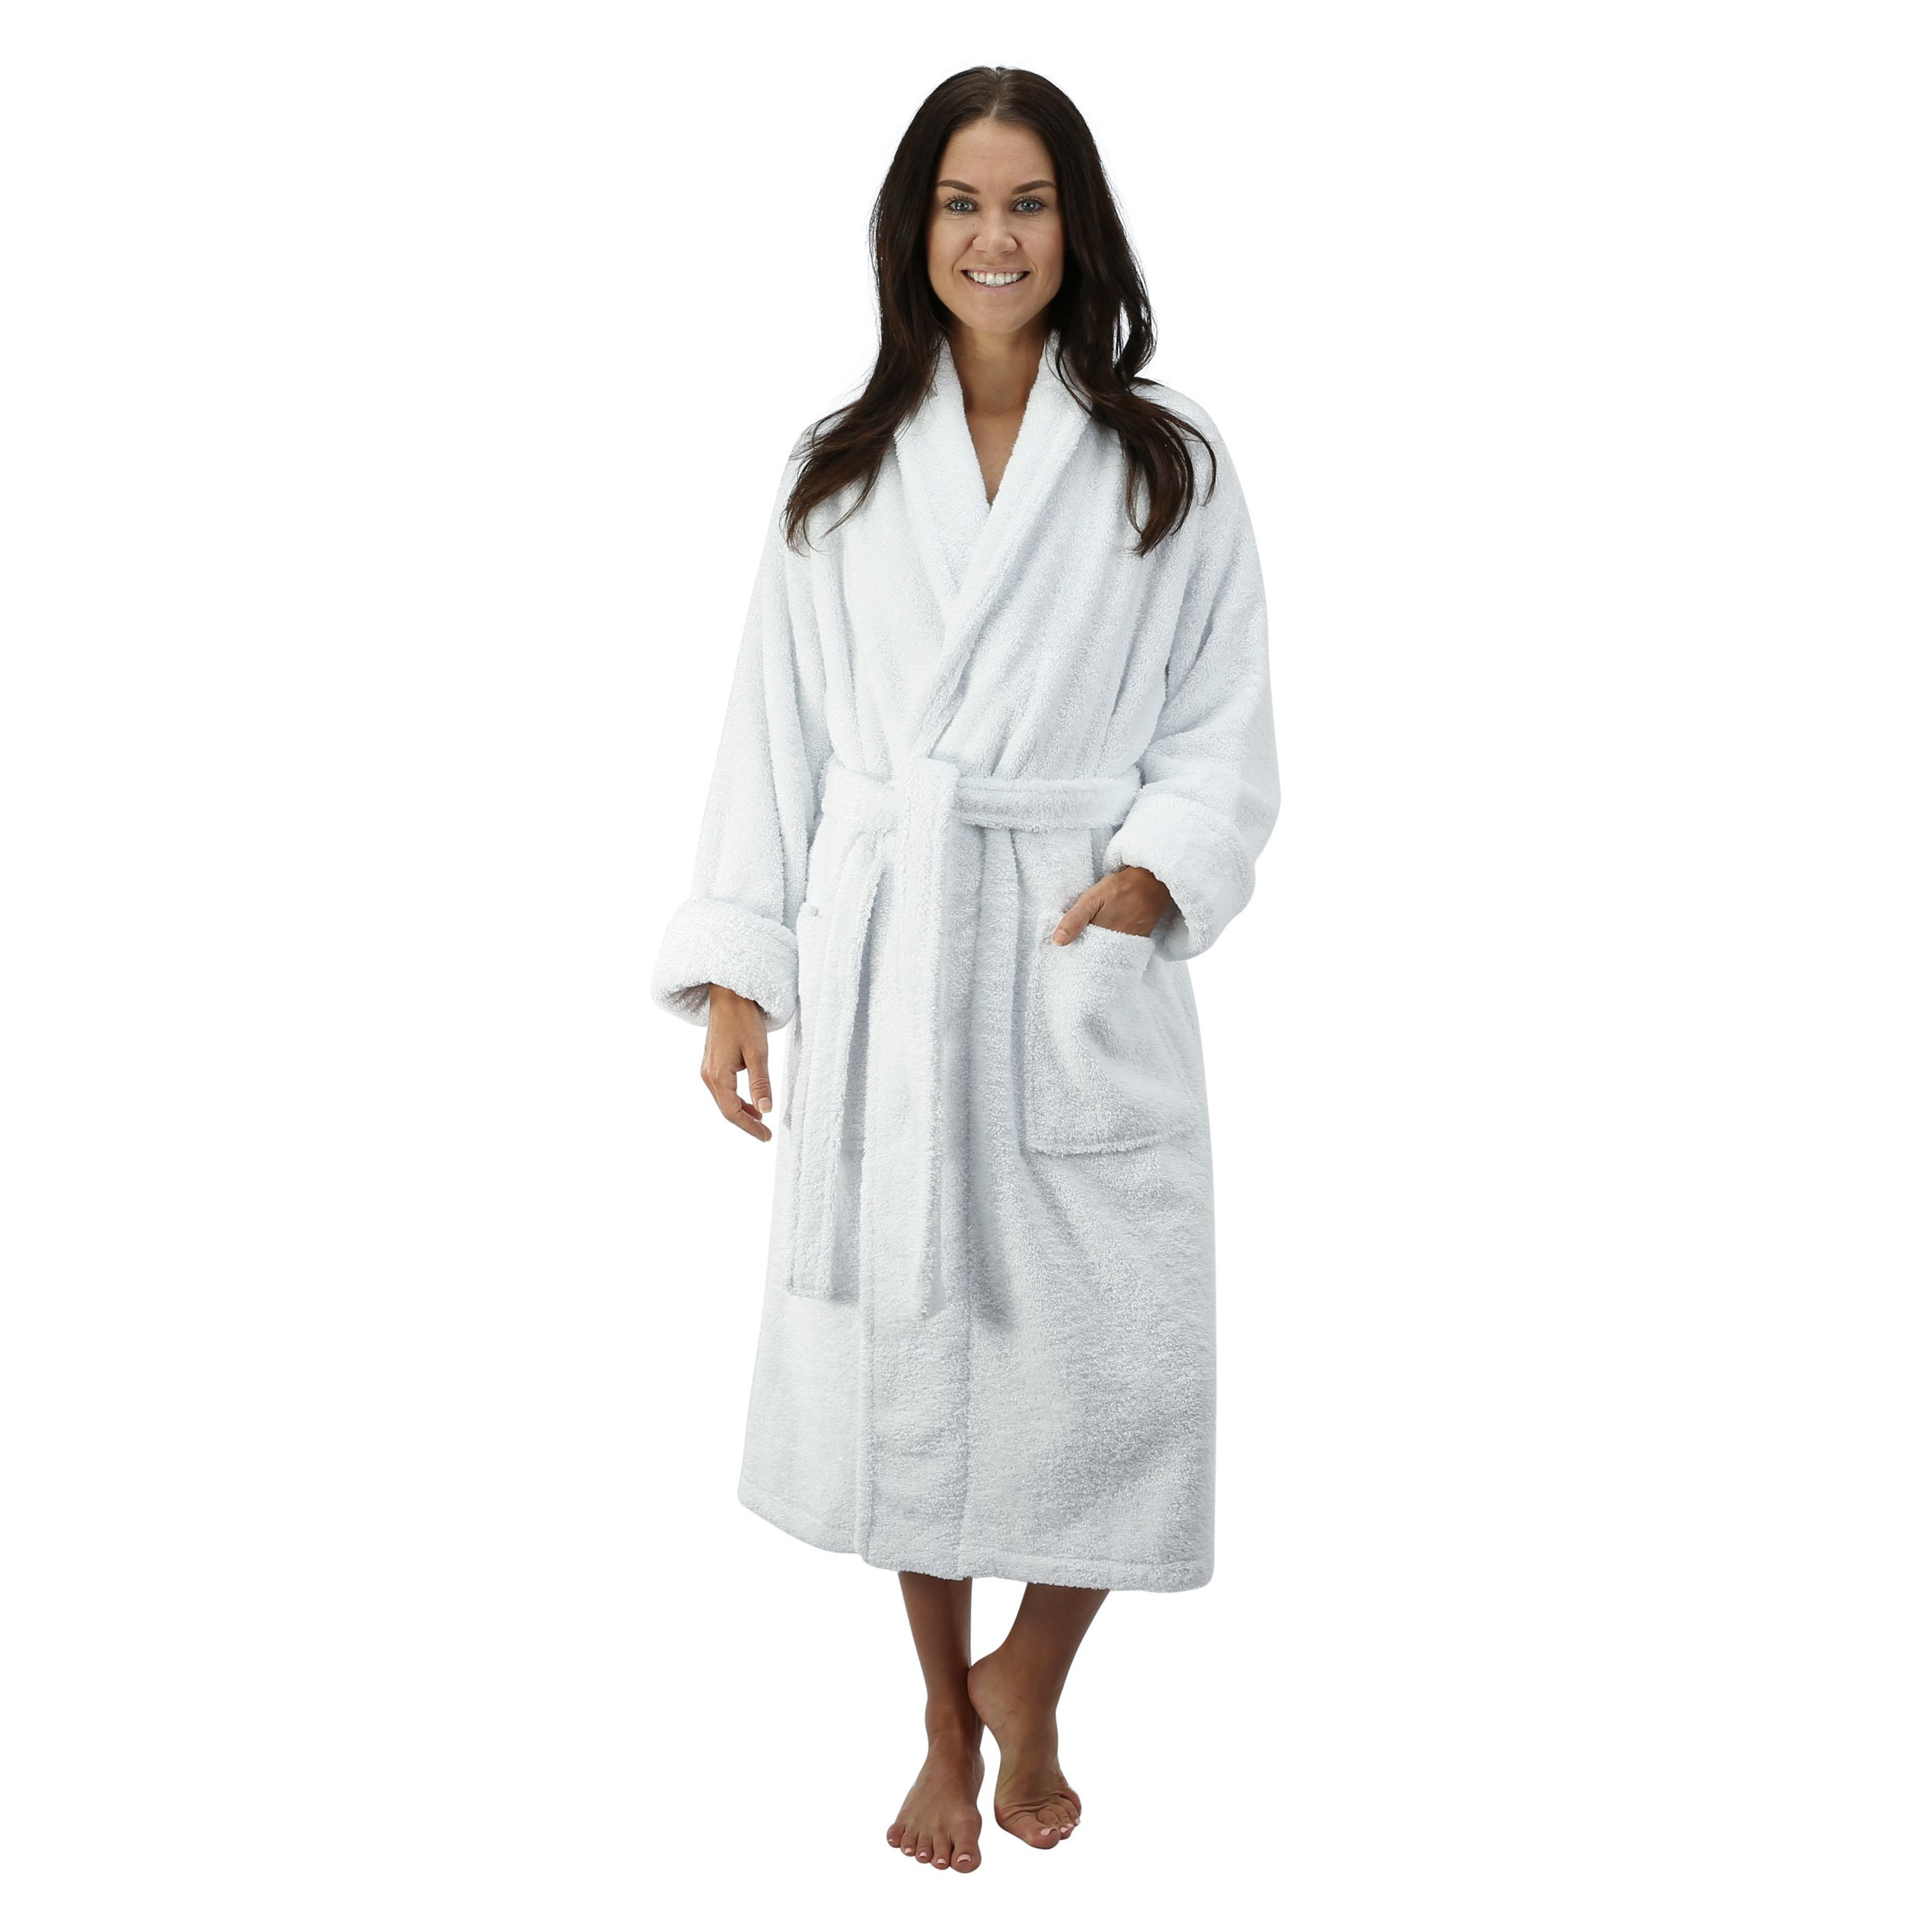 Comfy Robes Women's Deluxe 20 oz. Turkish Terry Bathrobe, S/M White by Comfy Robes (Image #1)